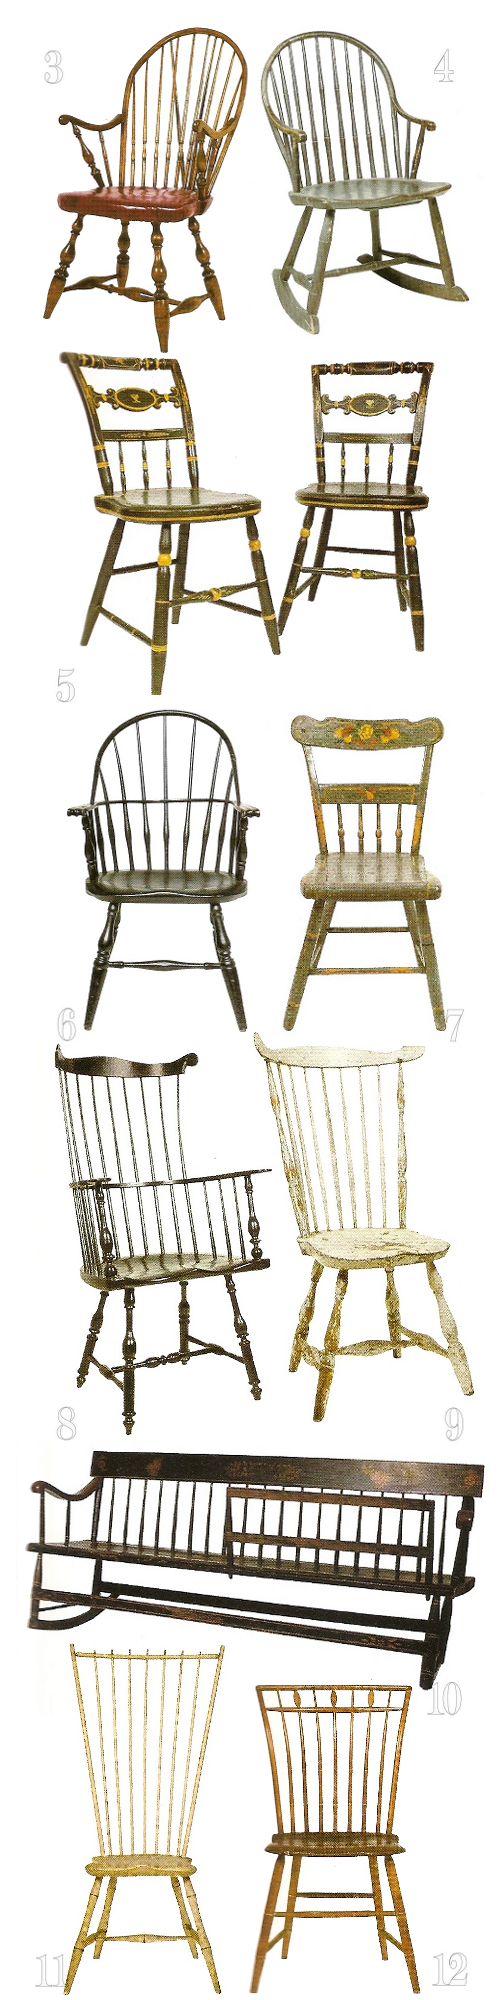 antique windsor chair identification ergonomic knee chairs and bench diy repair or refinish